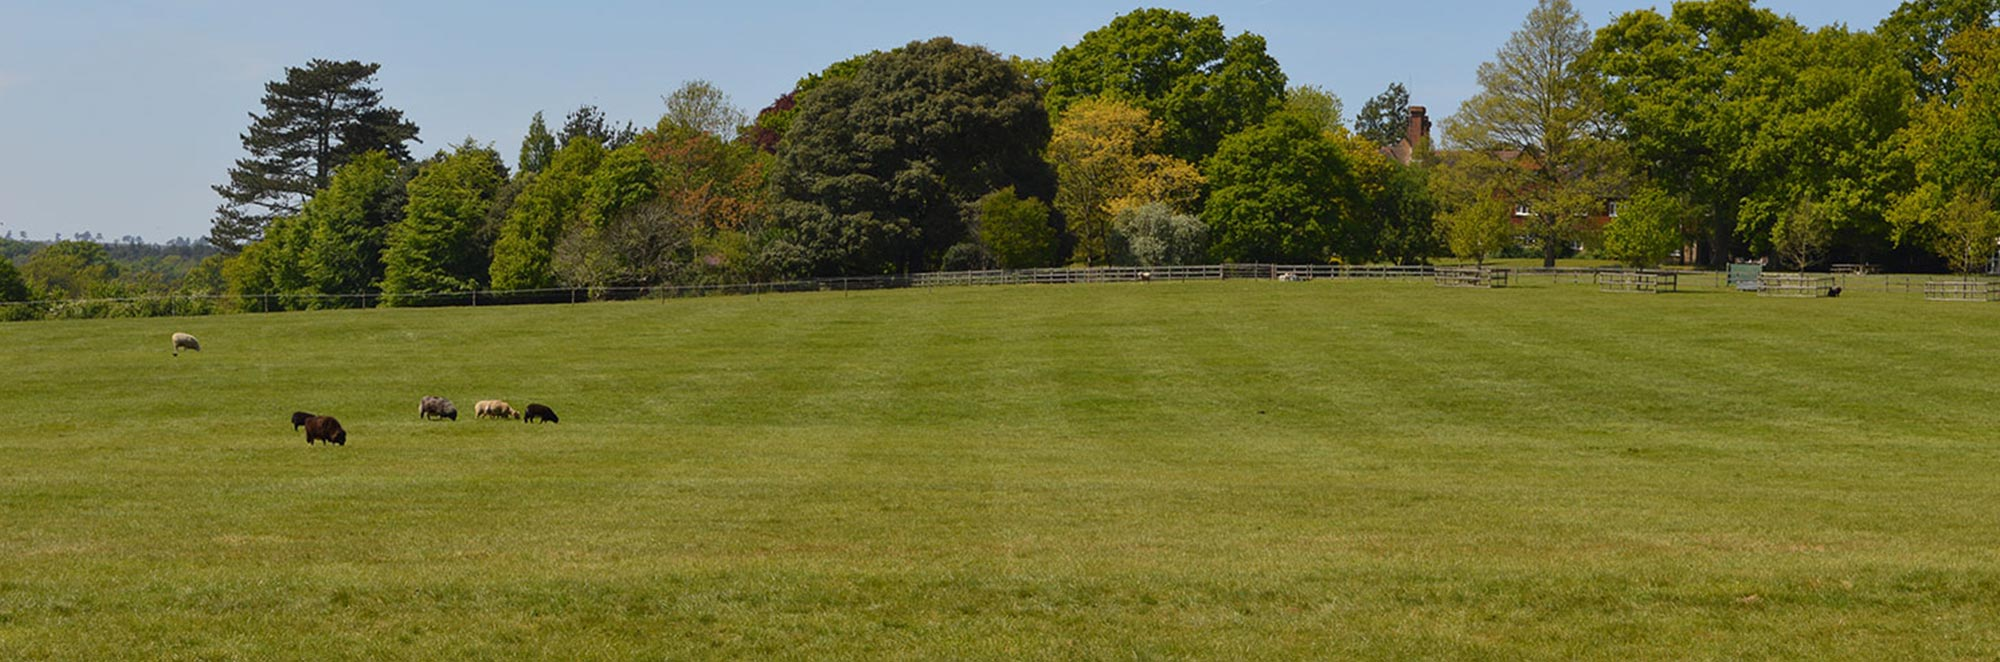 Park Field, near Guildford